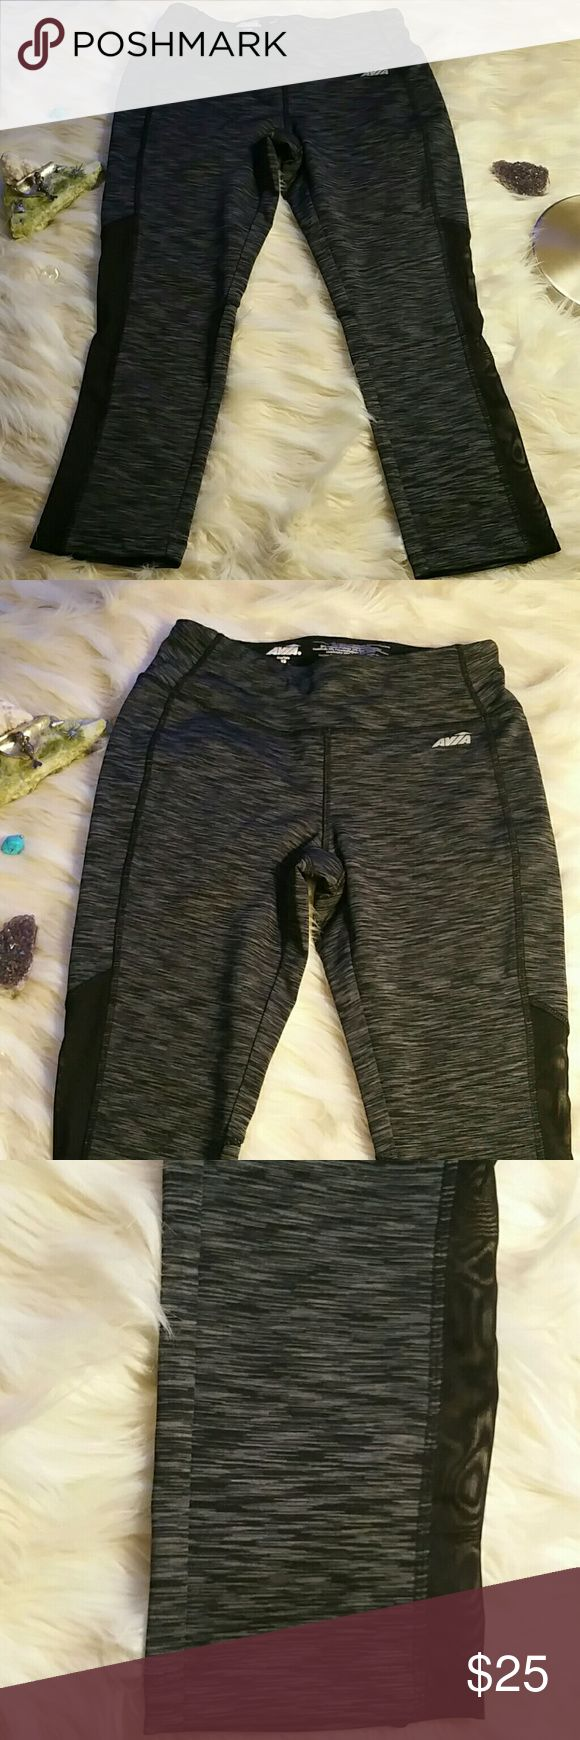 💕Hot Yoga Leggings Brand new never worn 7/8 crop fitted leggings Drawstring inside waist Black mesh against charcoal grey So flattering and pretty on Size XS fits the same as a 4 in lululemons wunderunders Sweat wicking for workout Love these but just never wear!  I have the Victoria's Secret Strappy charcoal sports bra listed seperate. It's a size Small. Bundle the two items for the complete look💕  💕Bundle w any item SAVE 5%💕  Alo, lulu, mika, electric, manduka, nike, Adidas, under…